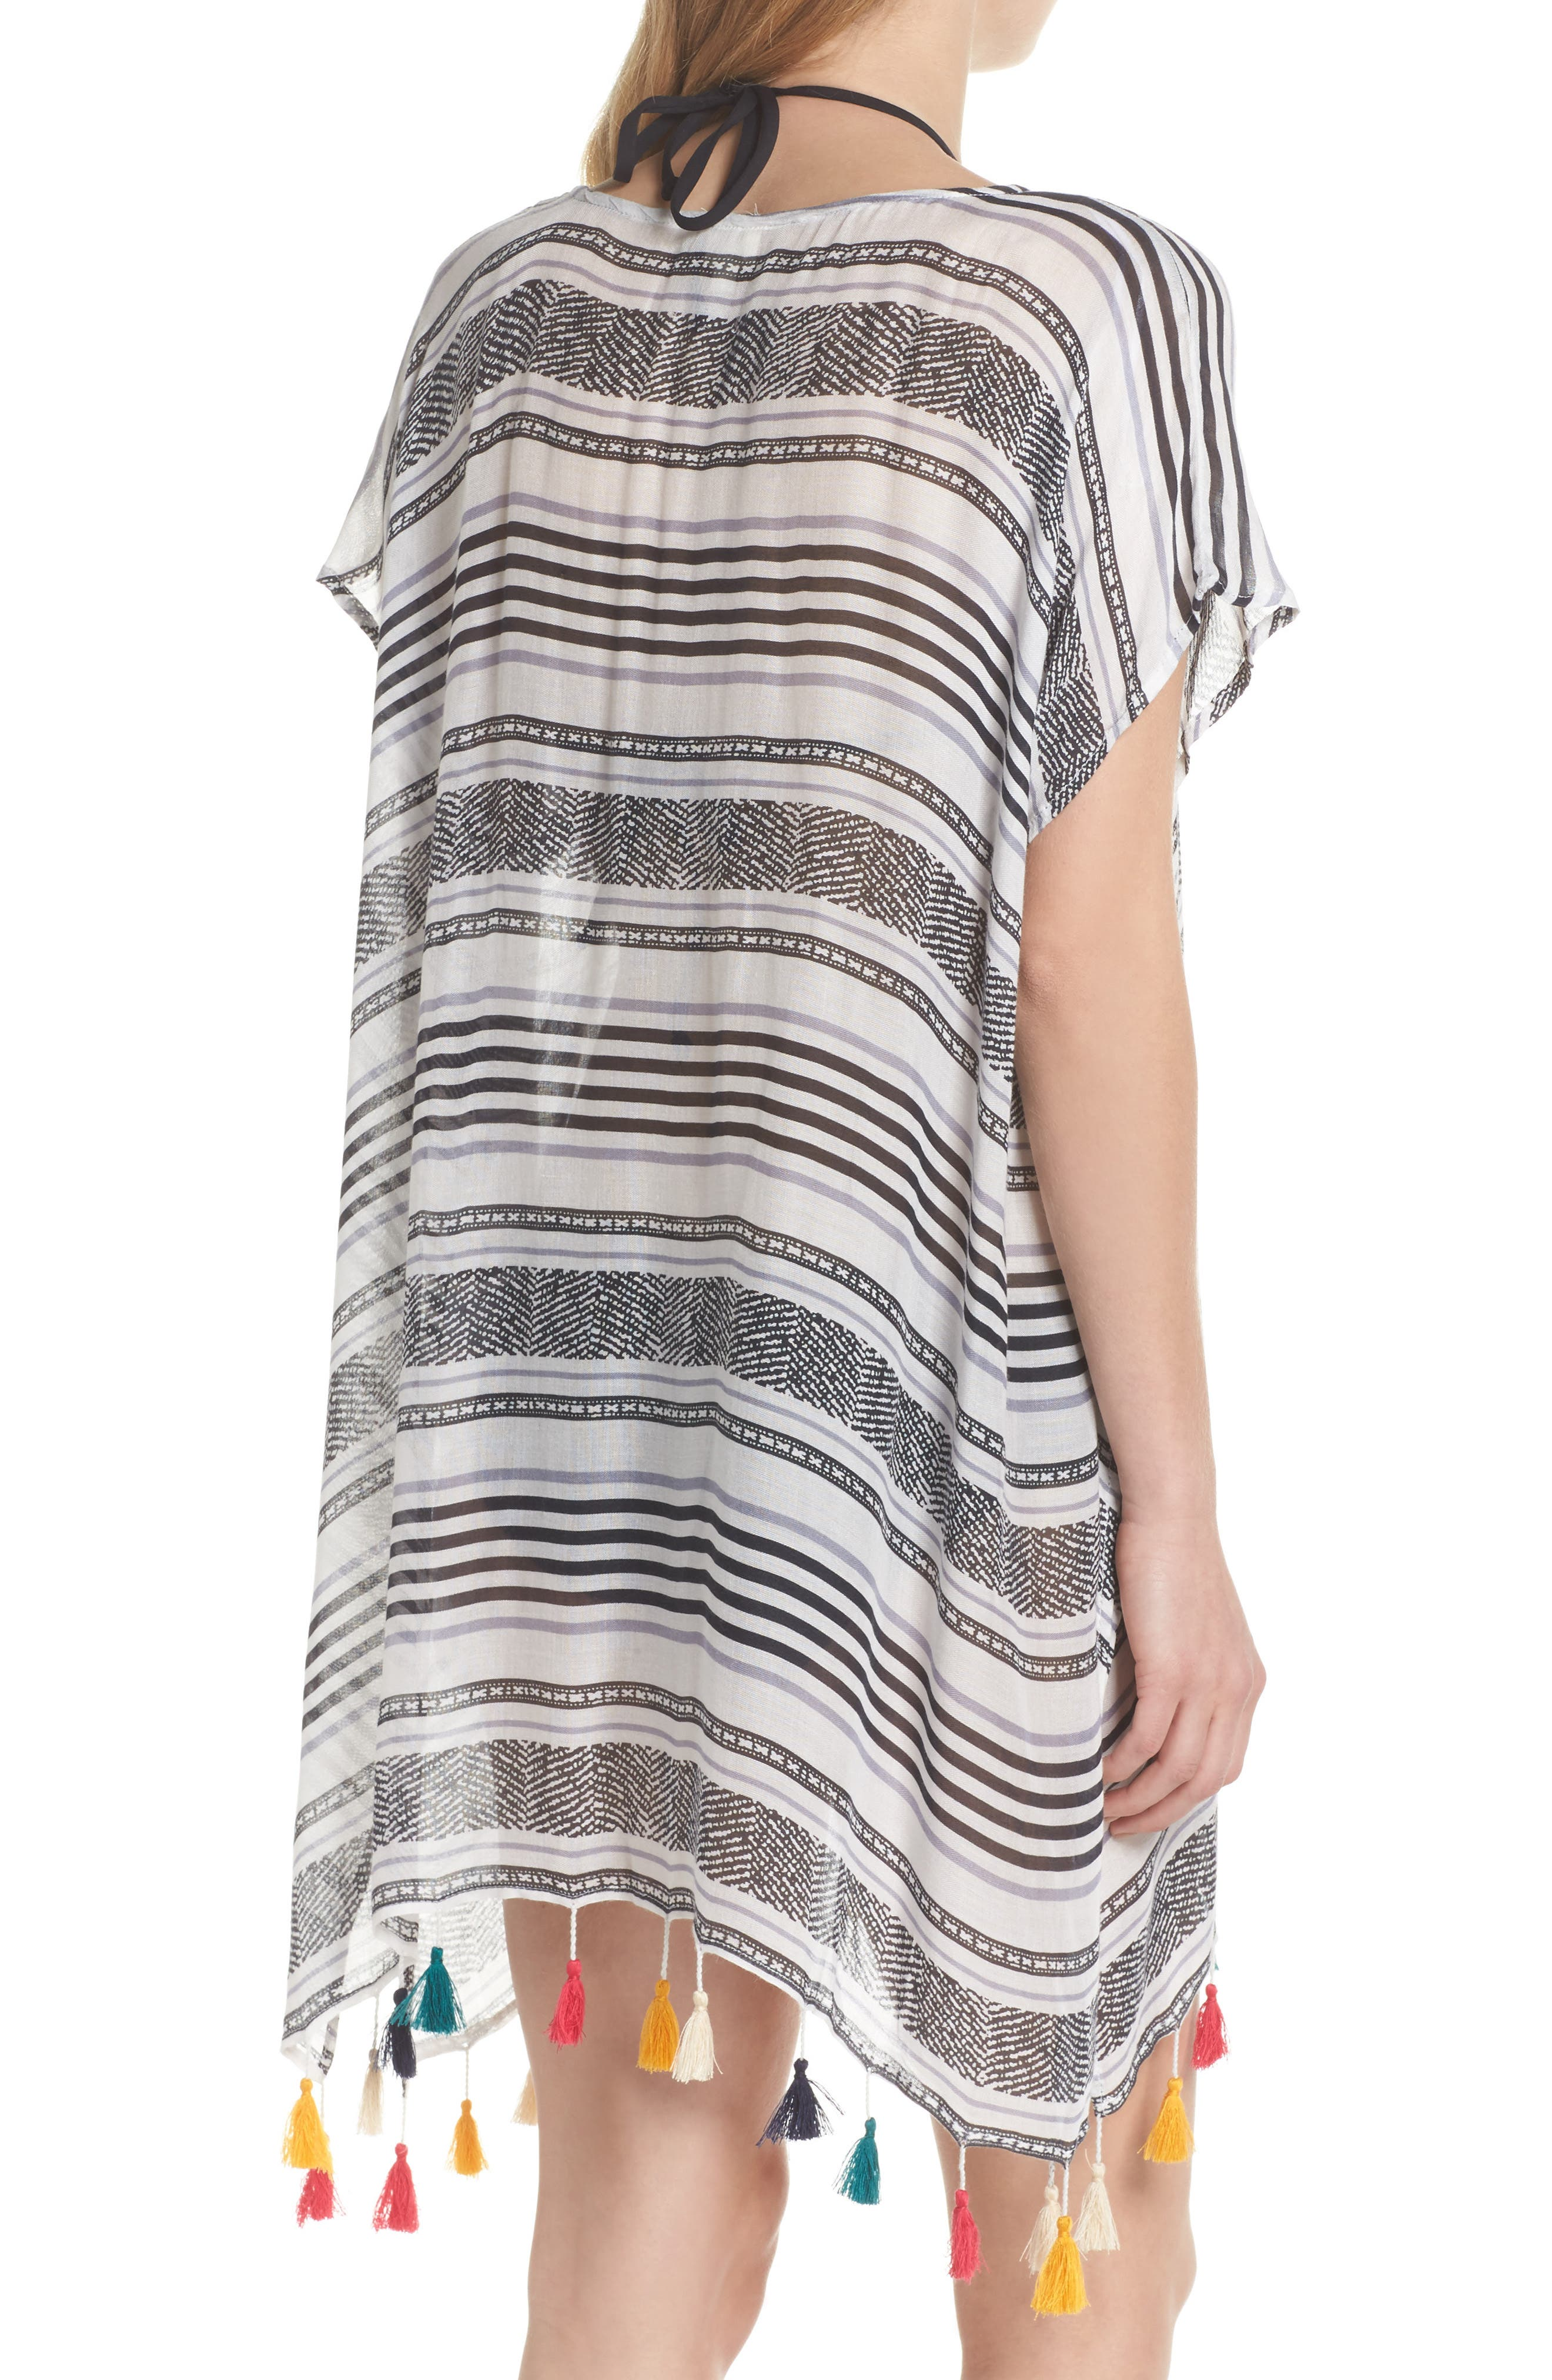 SURF GYPSY,                             Stripe Tassel Cover-Up Tunic,                             Alternate thumbnail 2, color,                             020